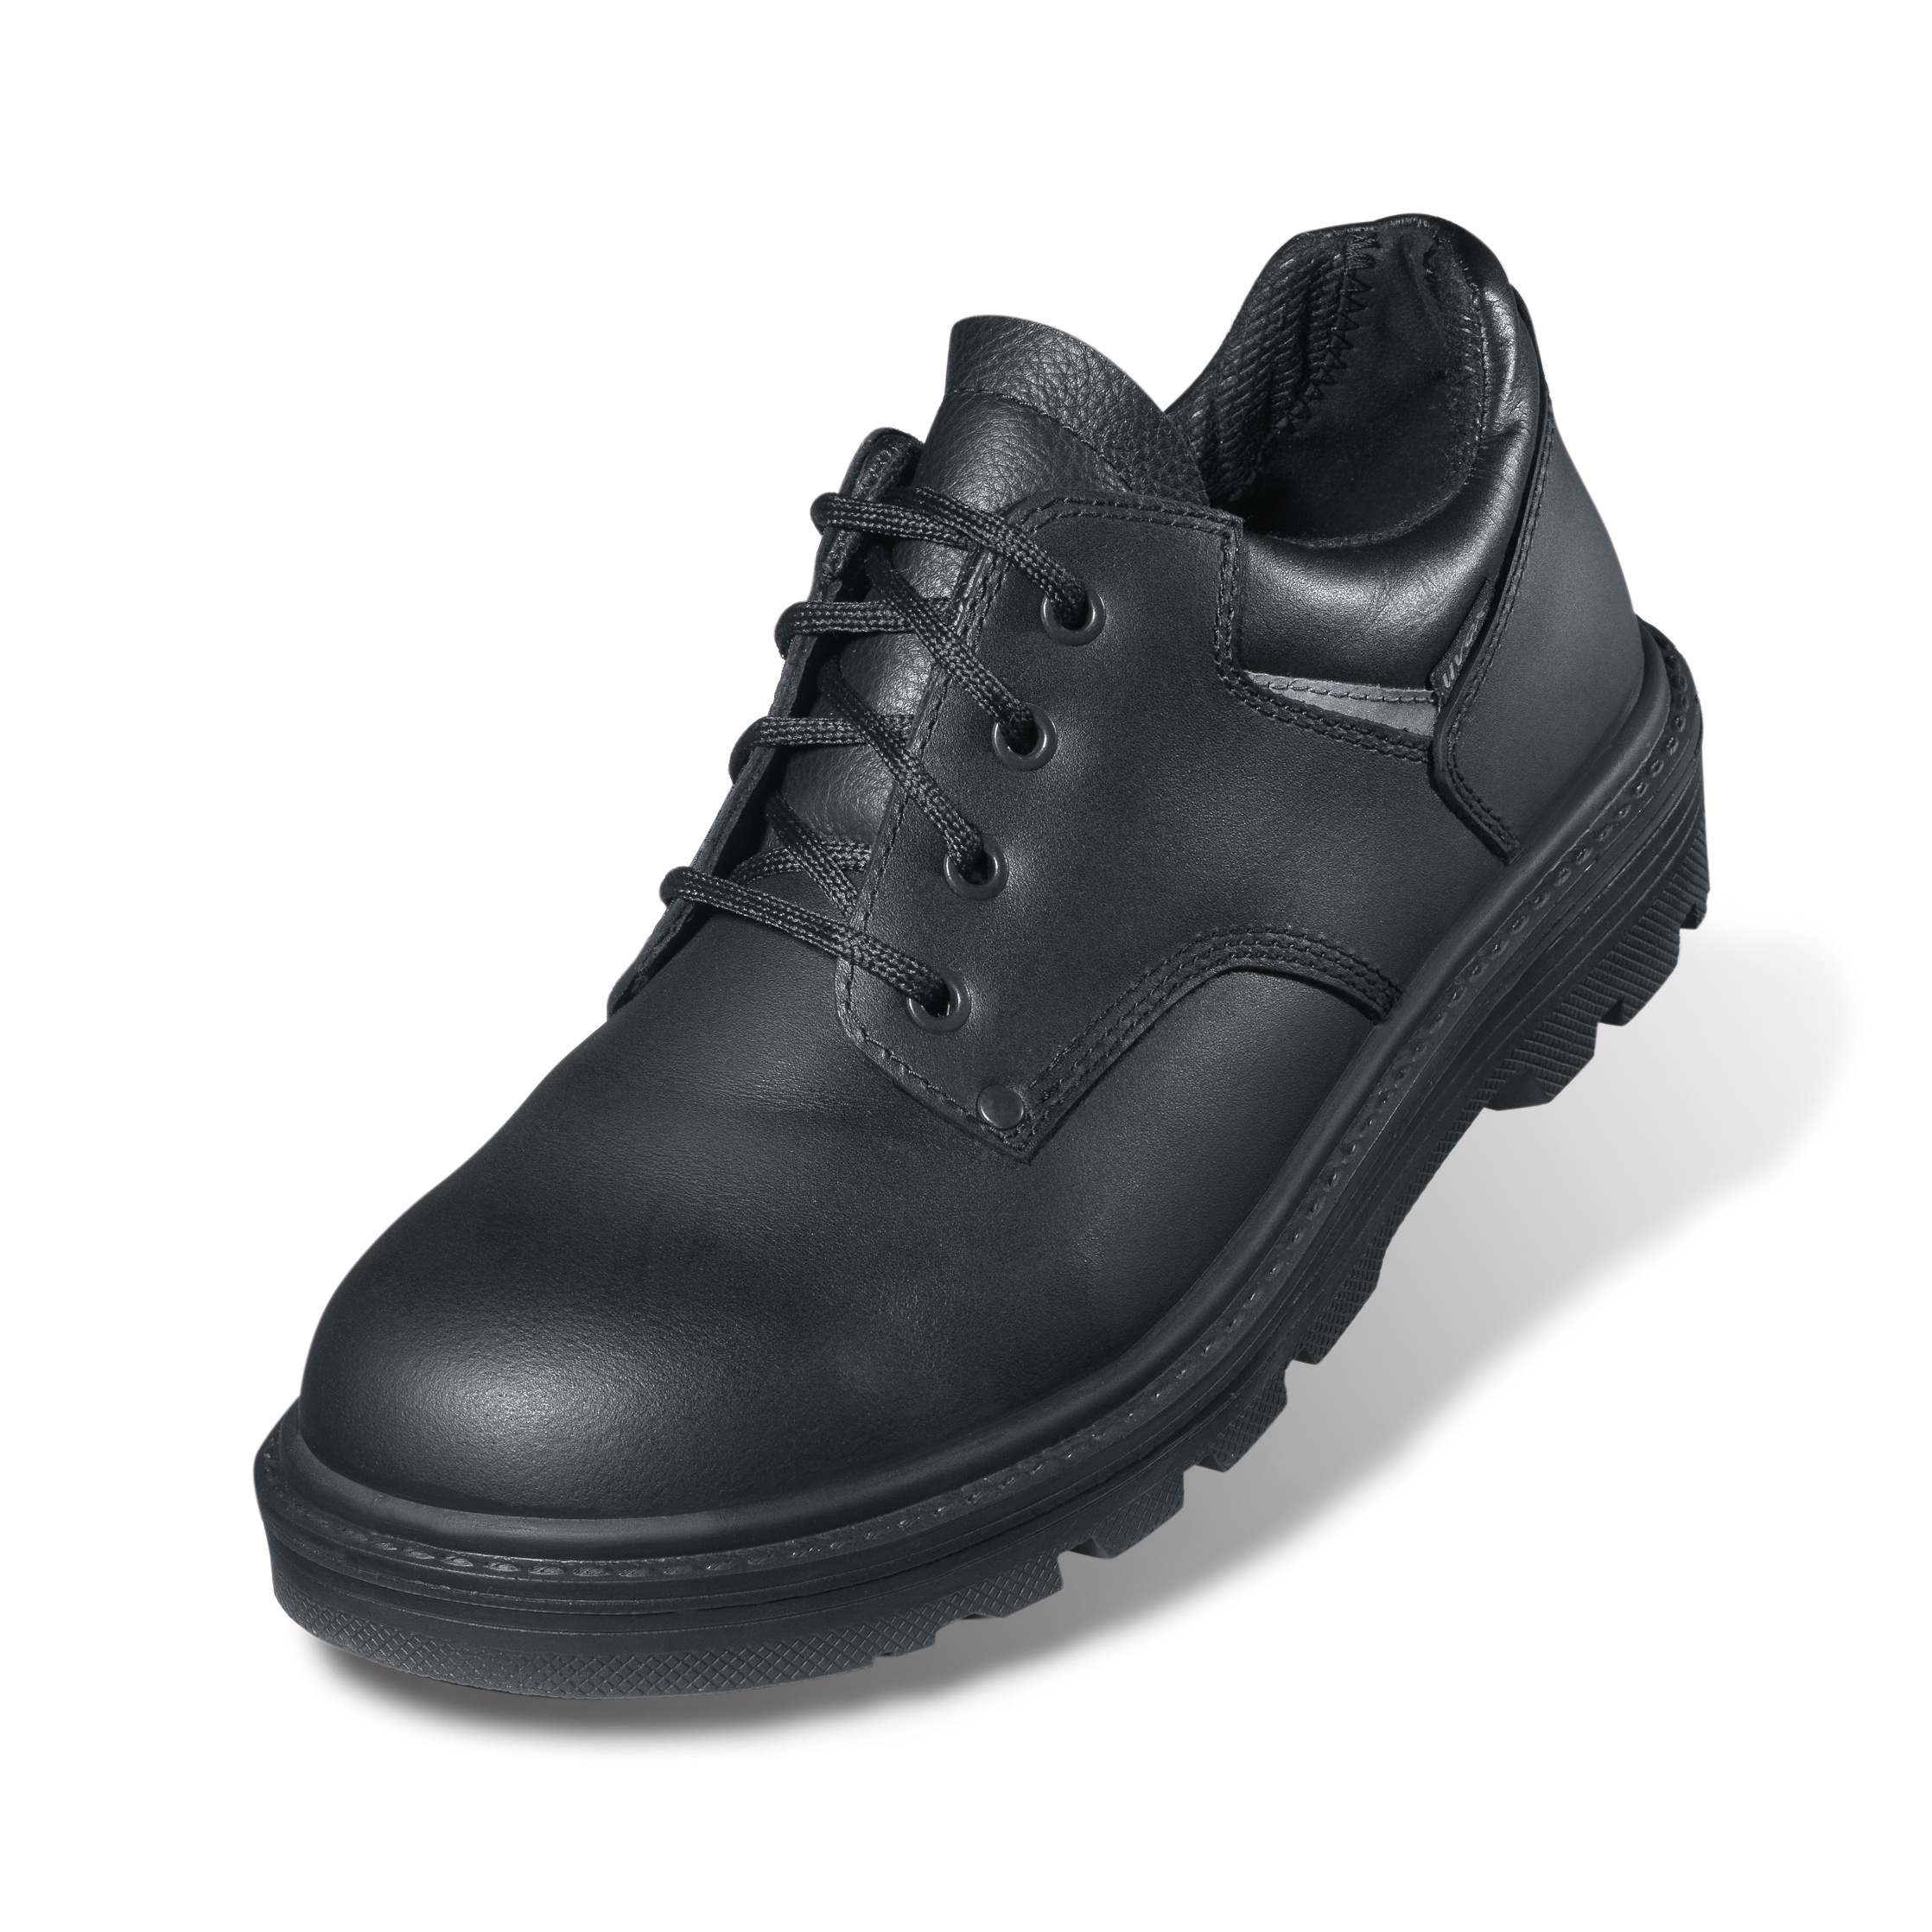 7c760f76a32 uvex origin S3 CI HI HRO SRC | Safety shoes | uvex safety